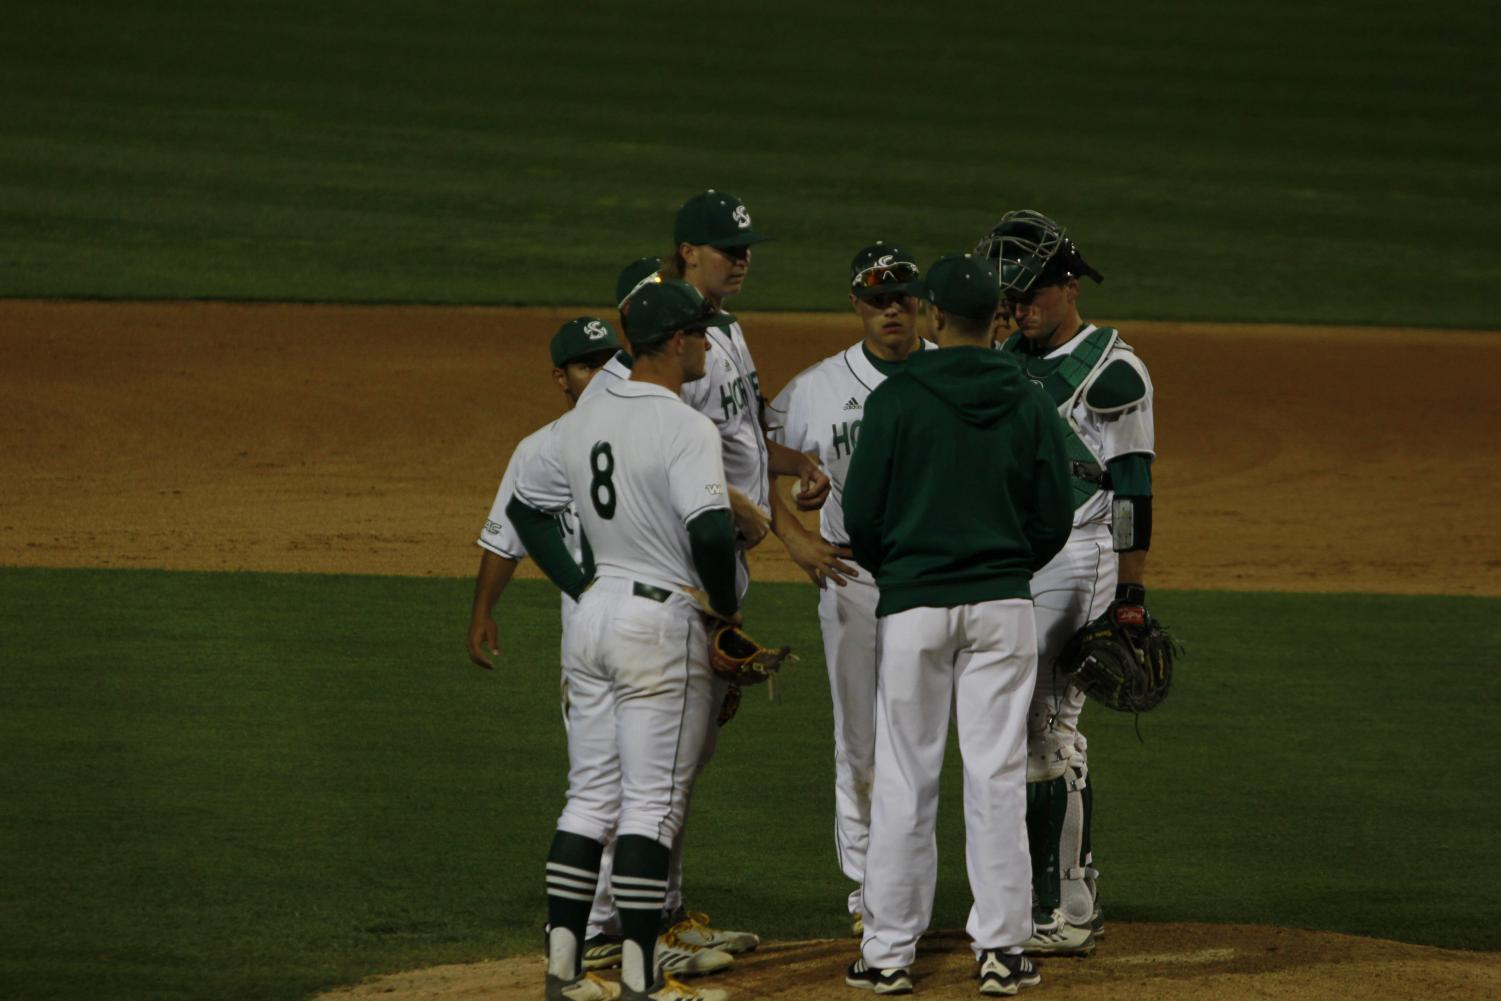 Members+of+the+Sac+State+infield+have+a+meeting+on+the+mound+in+a+6-0+win+over+Cal+Tuesday+at+John+Smith+Field.+The+Hornets+went+12-1+on+a+season-long+13+game+homestand.